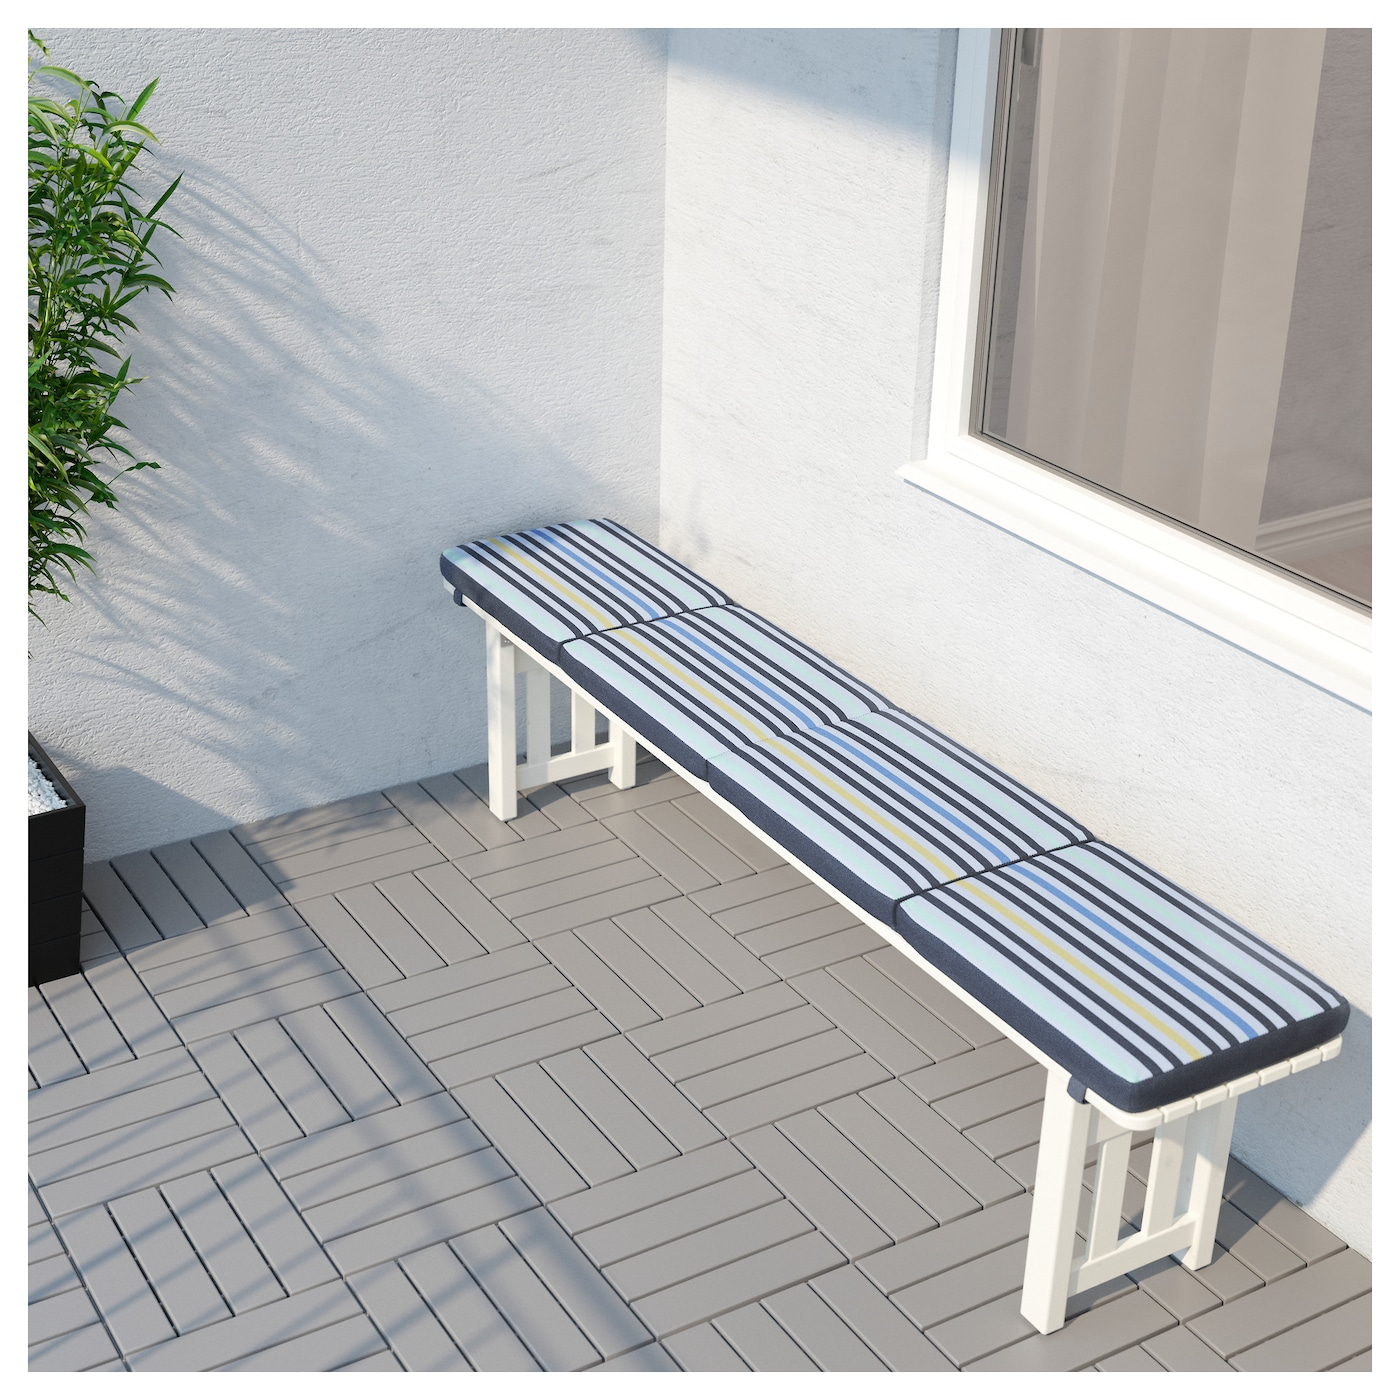 IKEA TÅSINGE bench cushion, outdoor Elastic straps keep the cushion firmly in place on the bench.